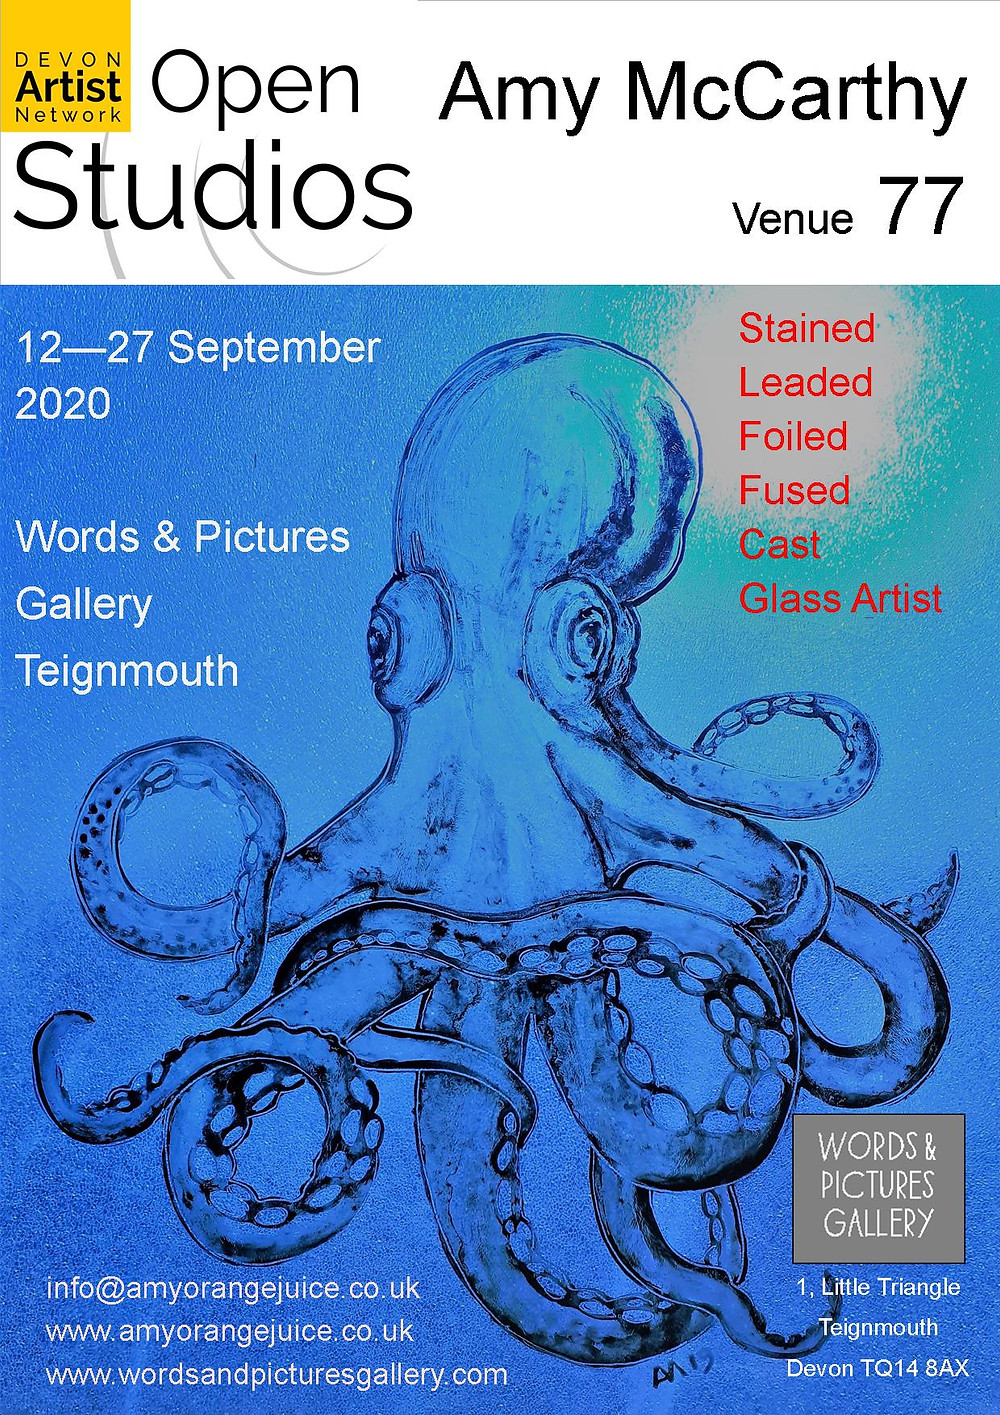 Amy McCarthy glass artist at Venue 77 - Words & Pictures Gallery